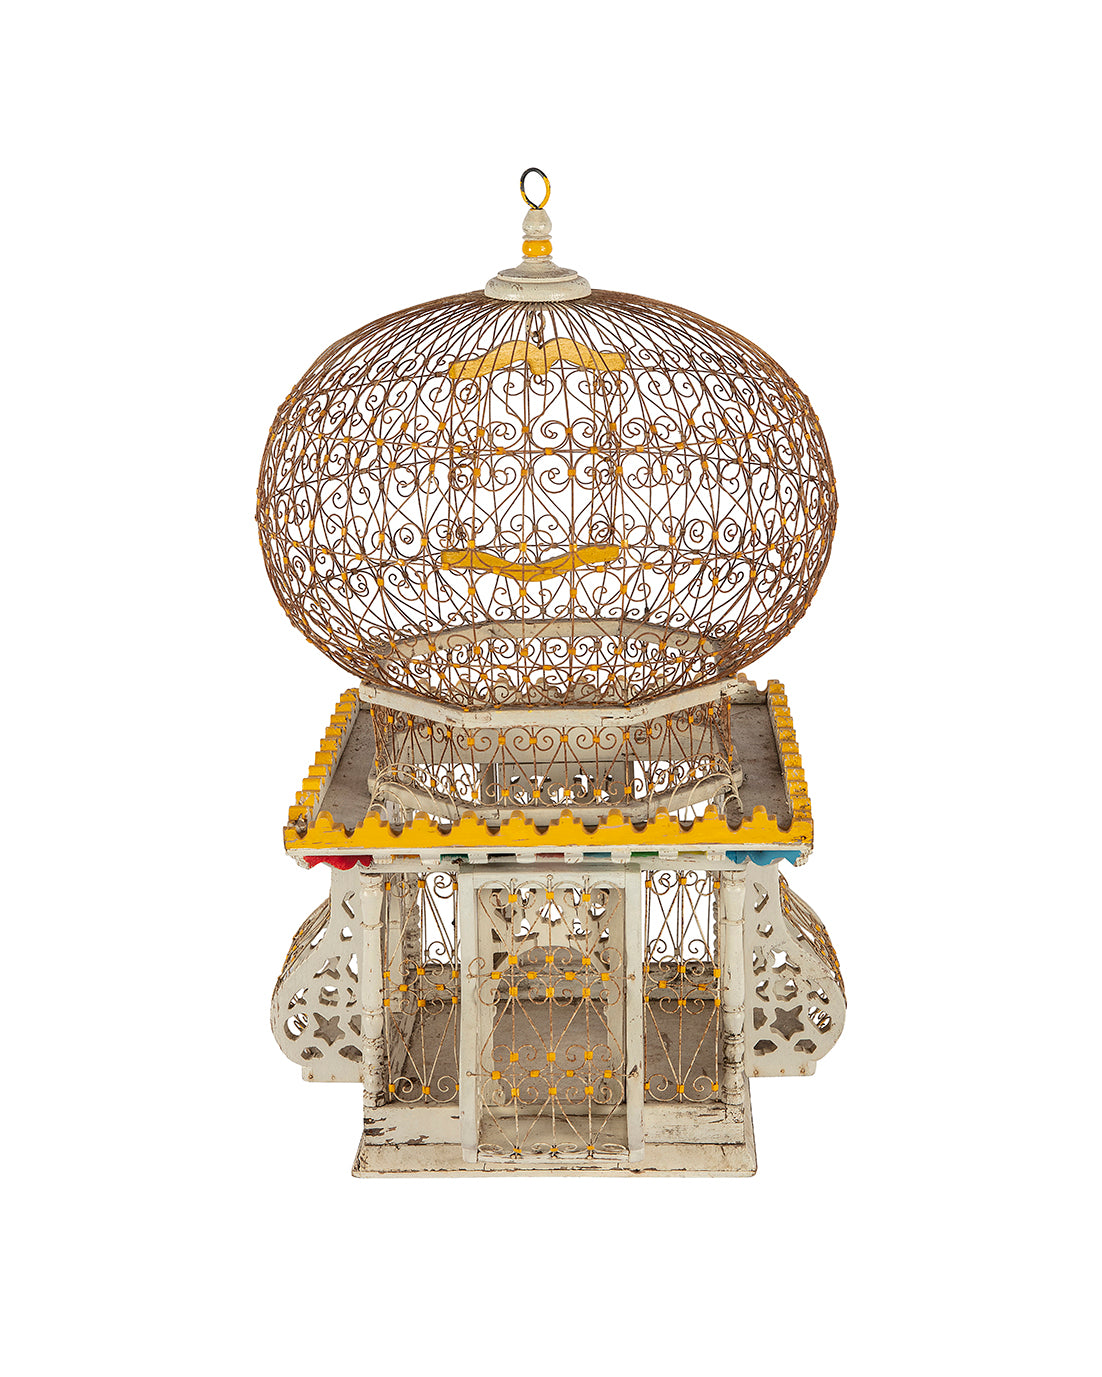 Indian-styled yellow birdcage